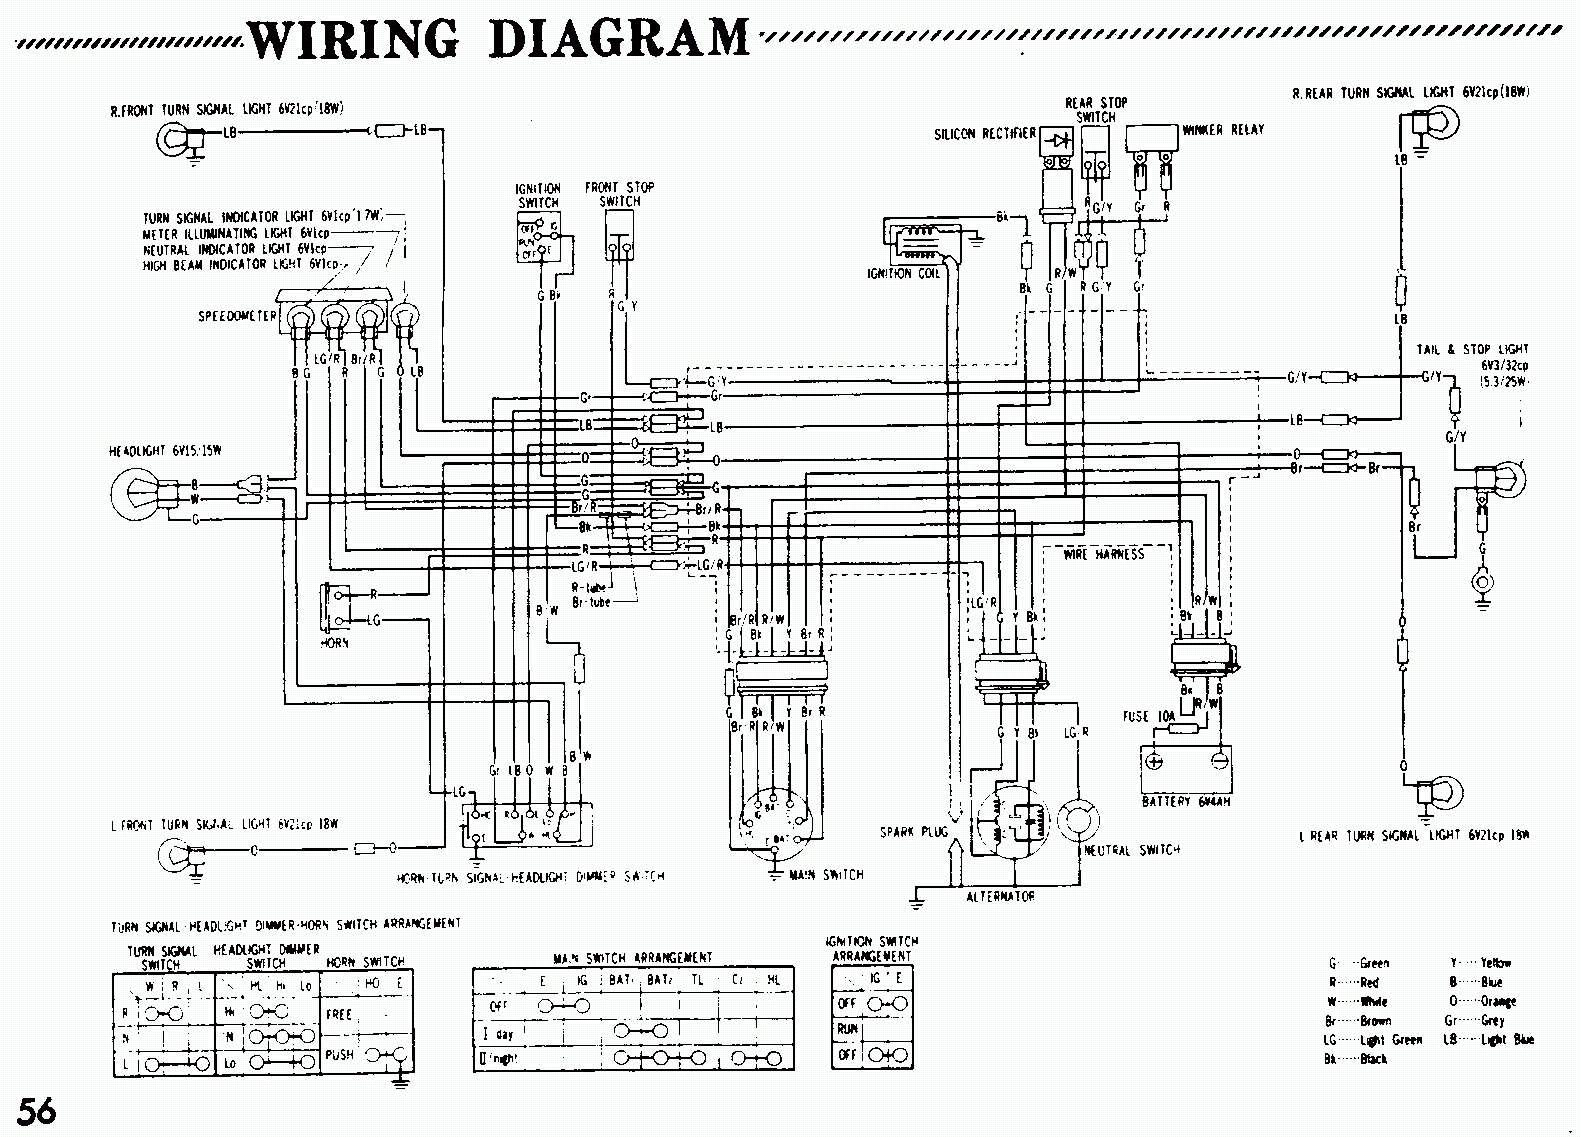 tbolt usa tech database tbolt usa llc rh tboltusa com Rectifier Wiring-Diagram Kawasaki Mule Wiring-Diagram Blueprints